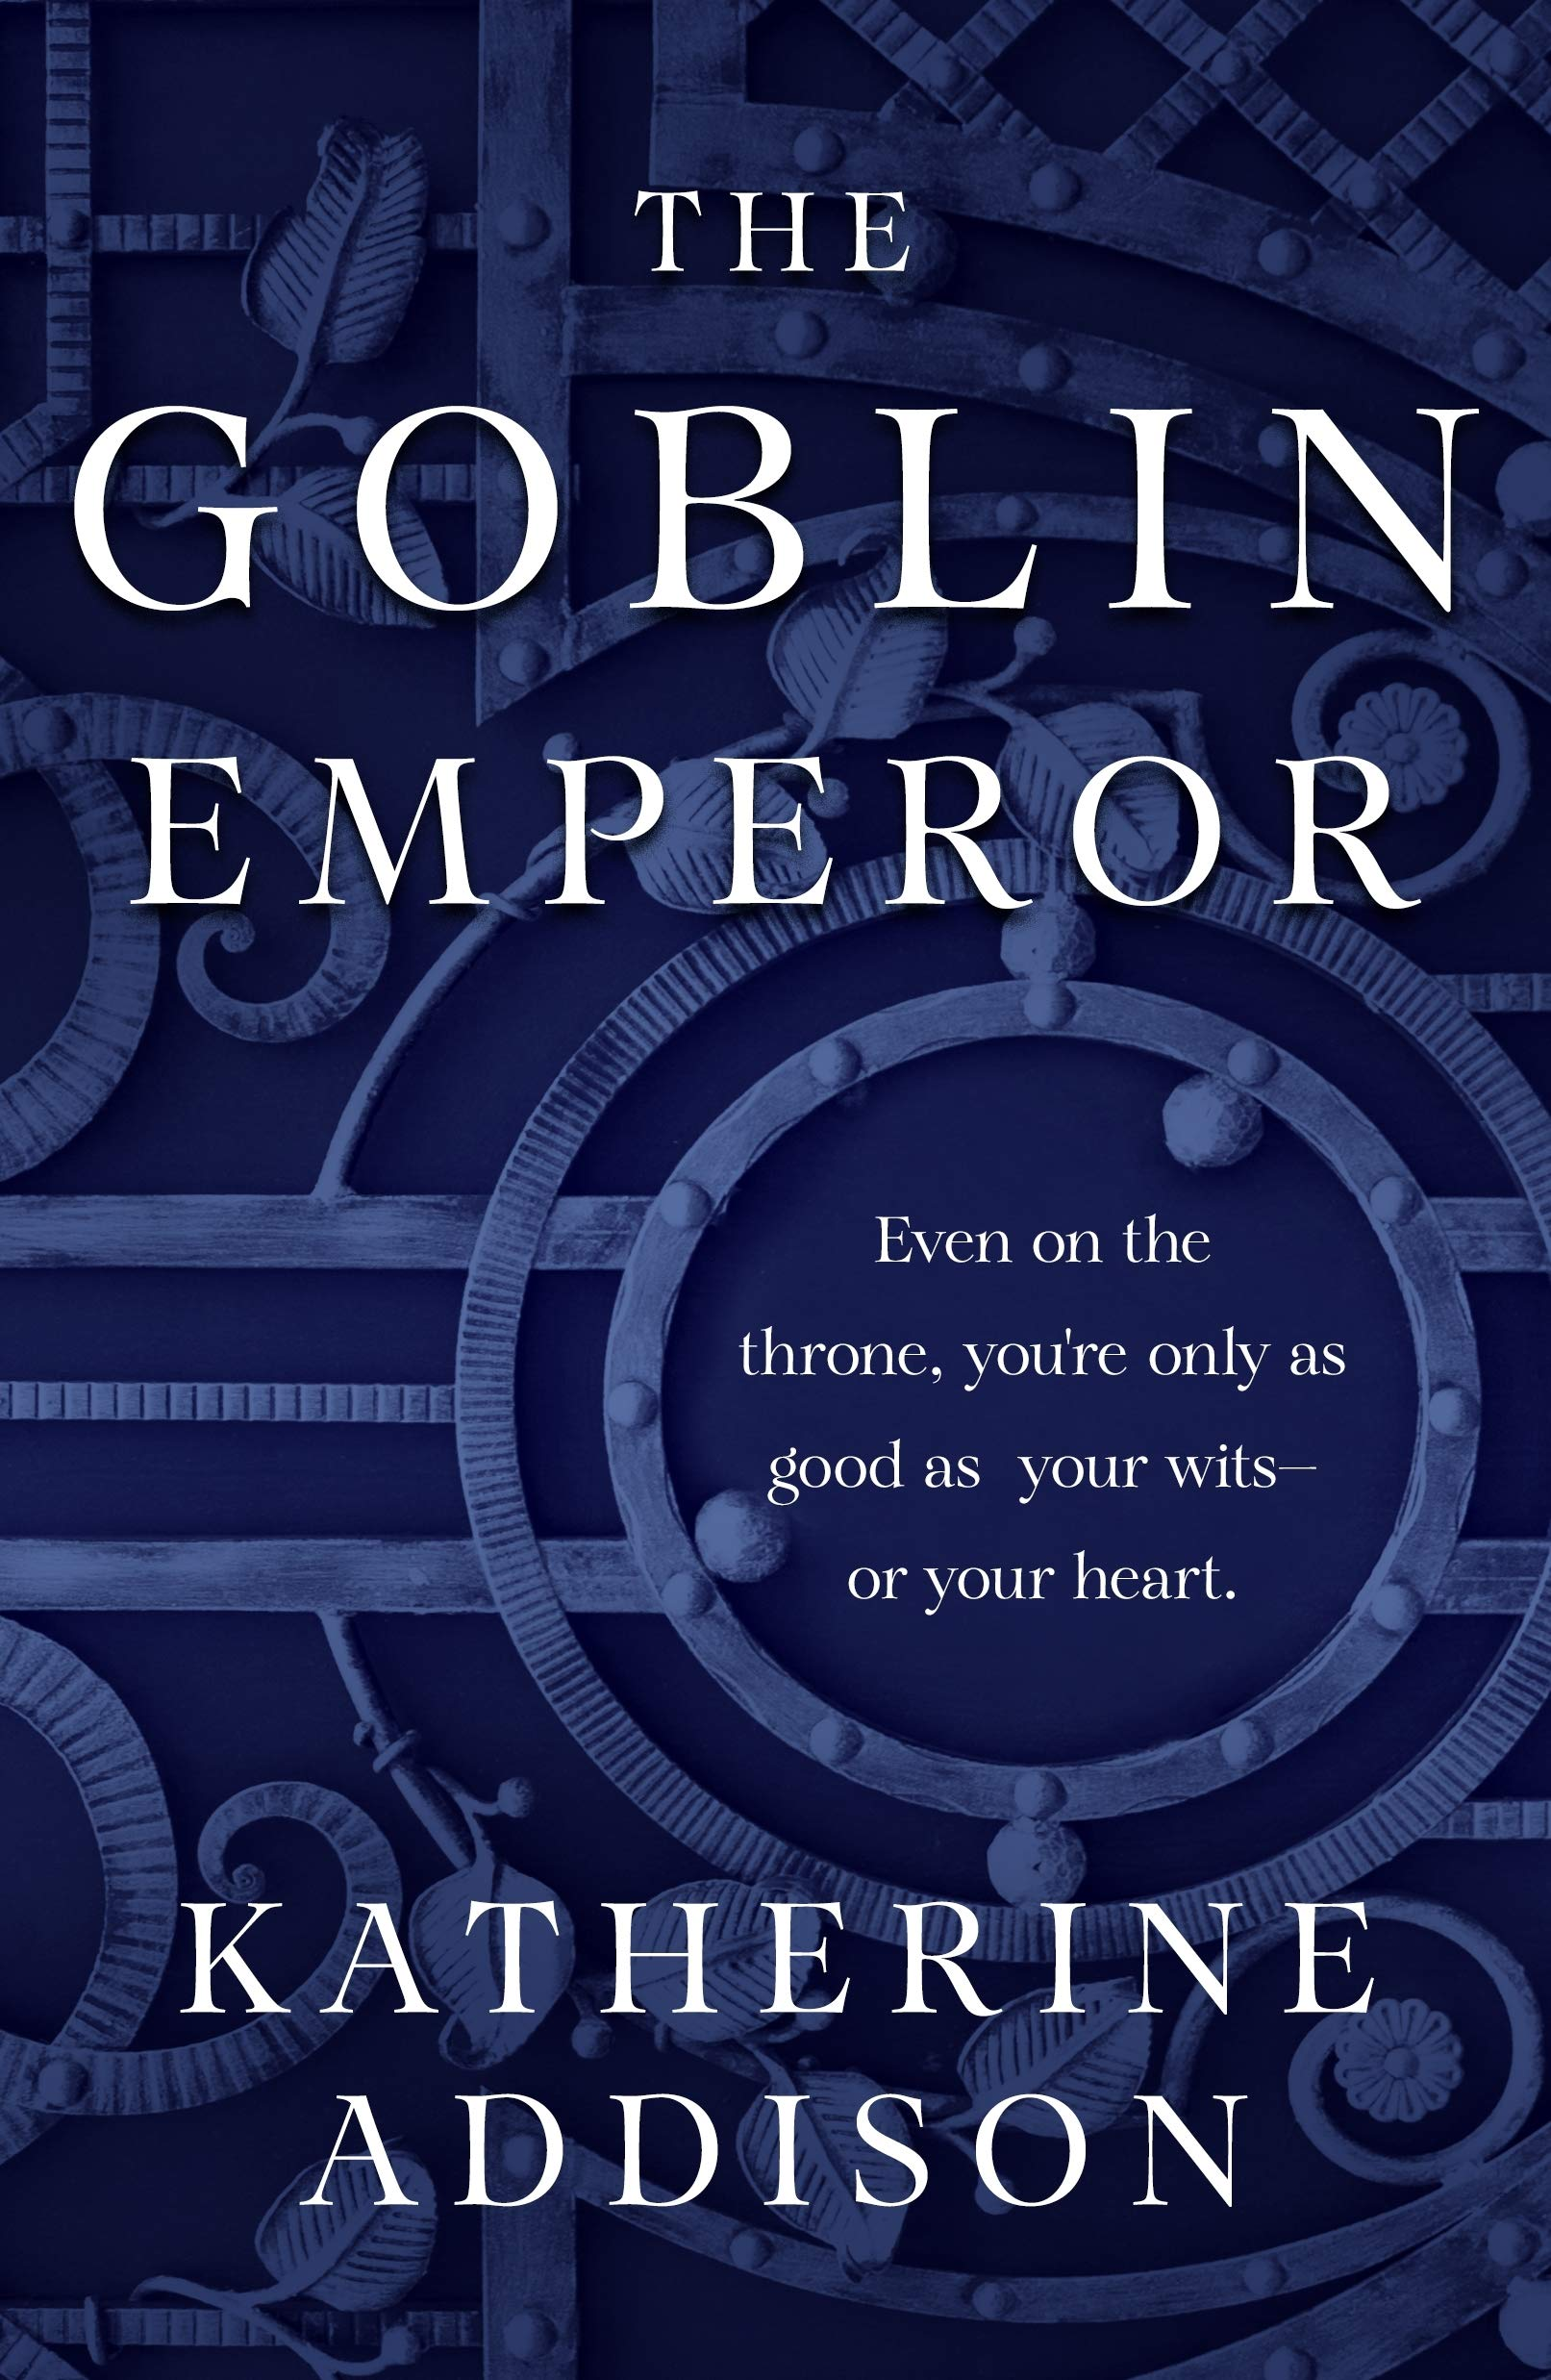 The Goblin Emperor: Katherine Addison: 9781250303790: Books